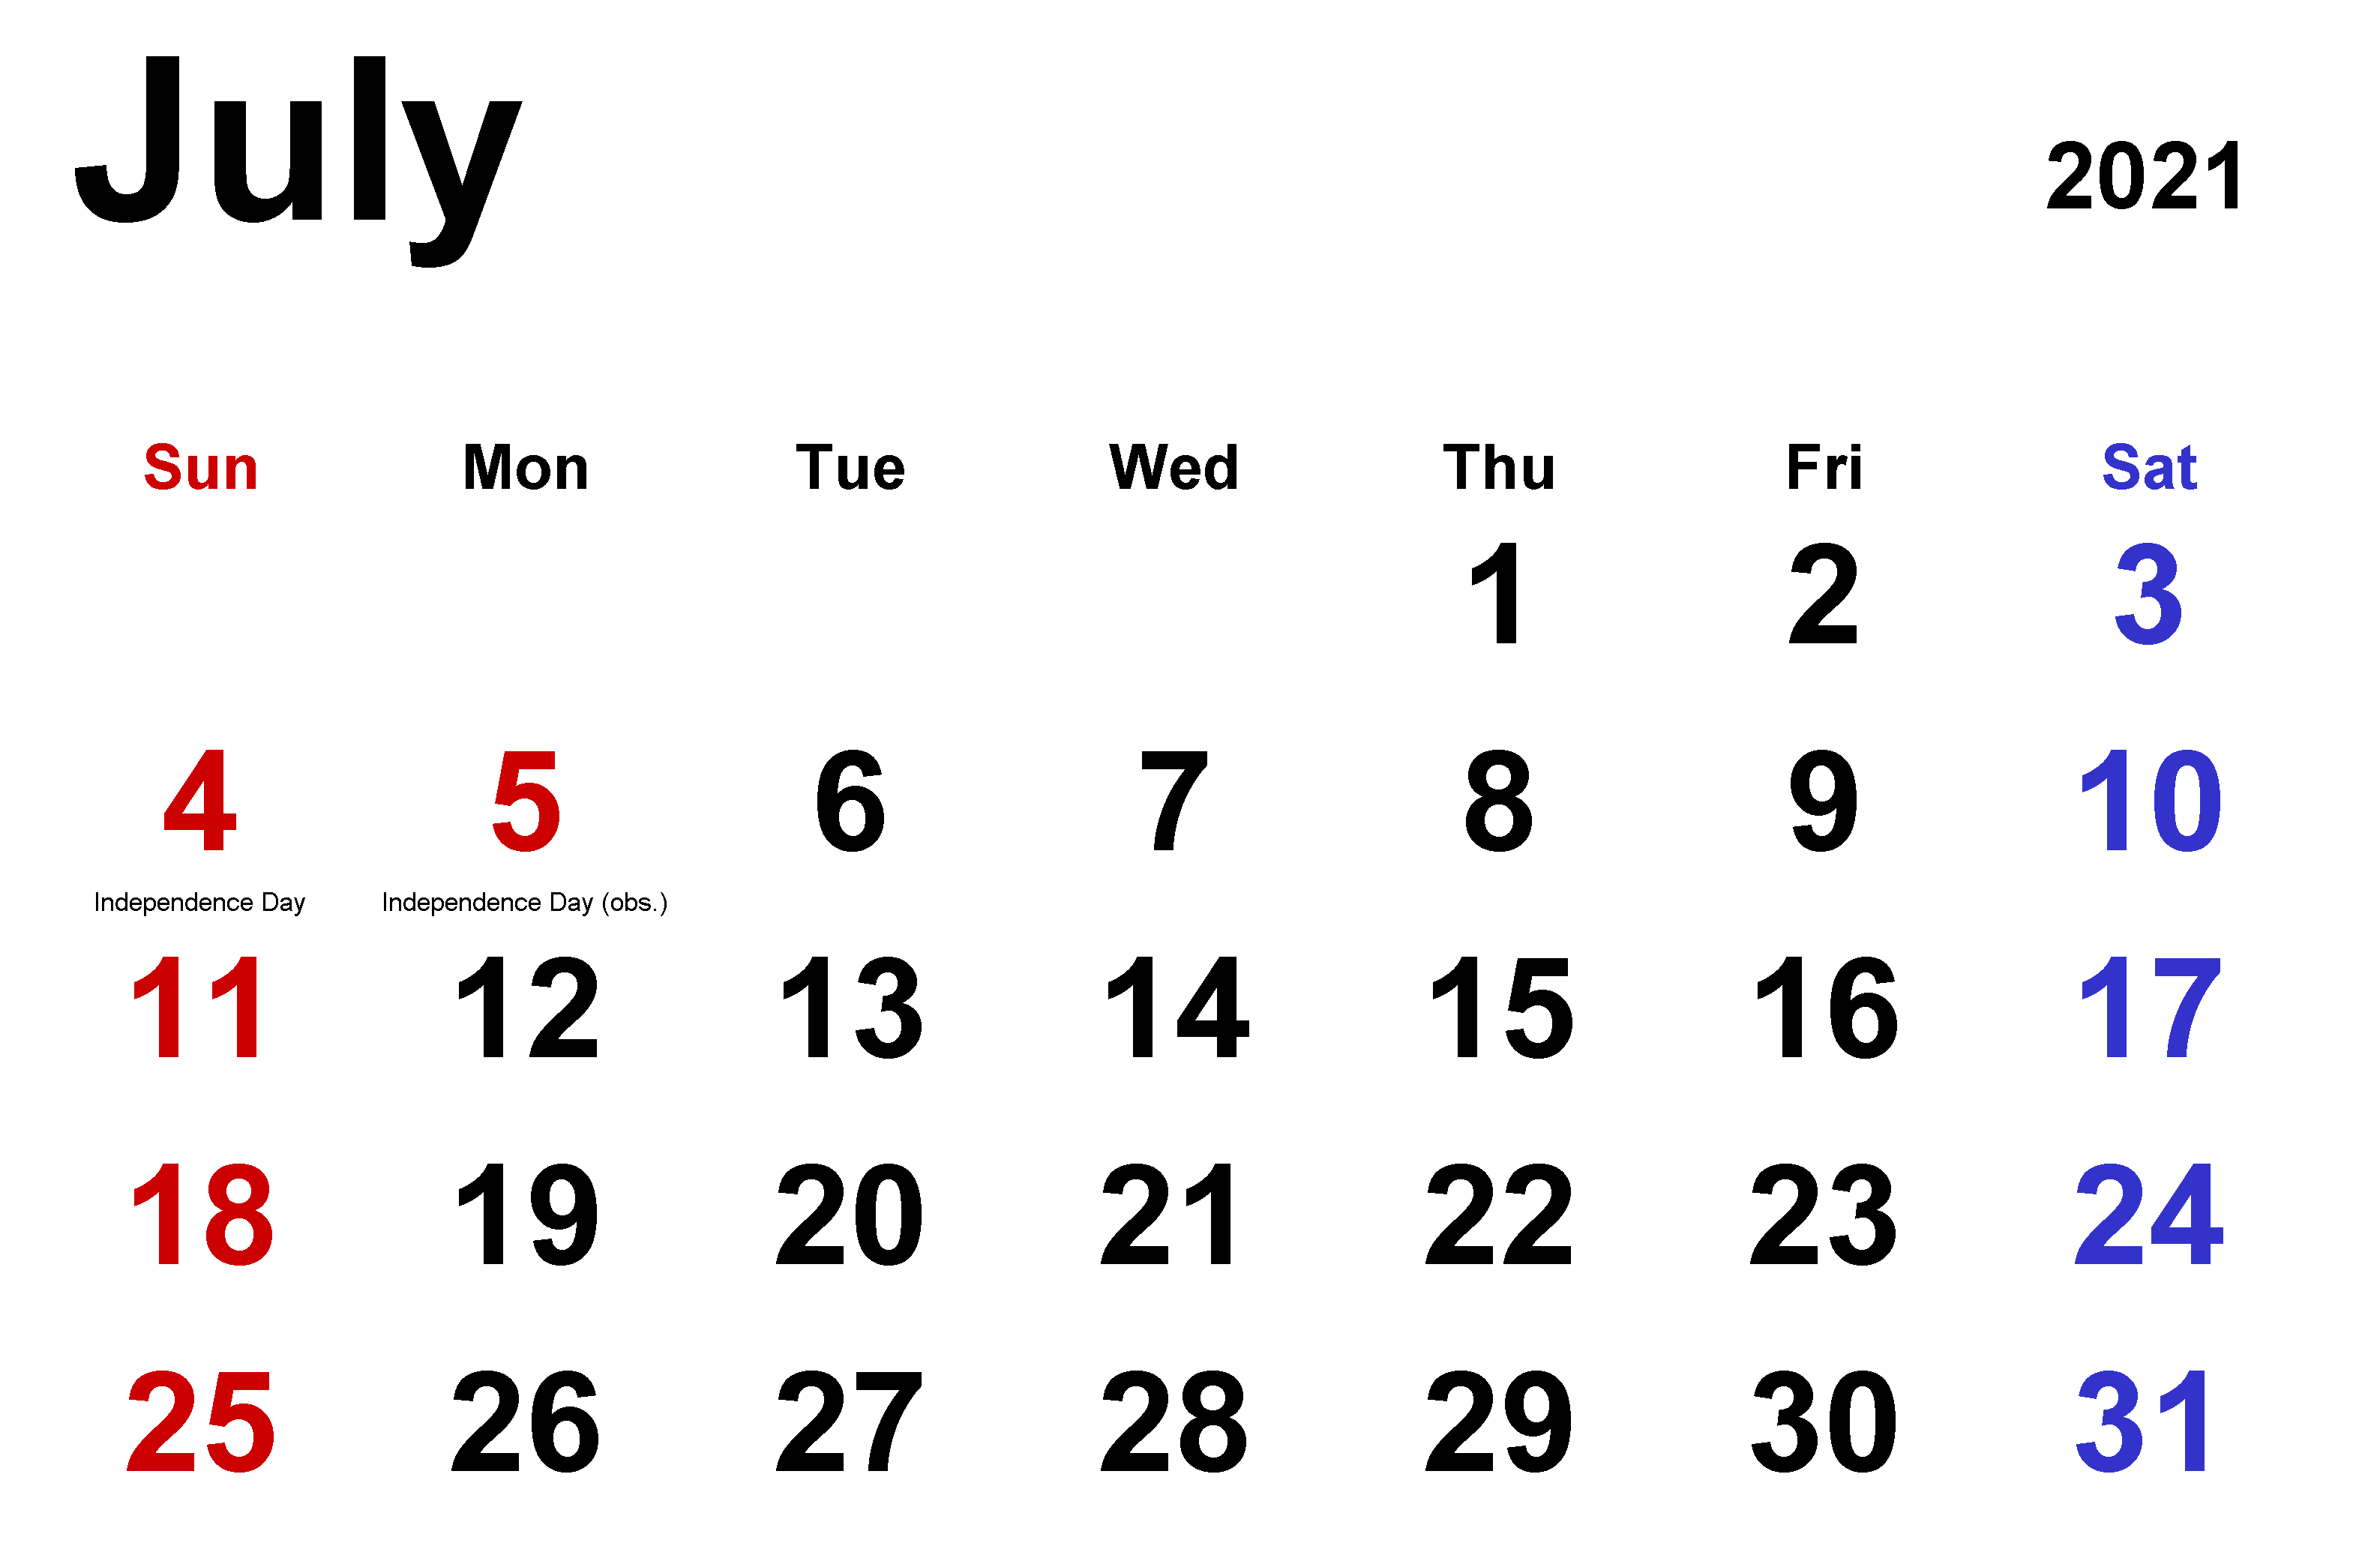 2021 Holidays of July Month